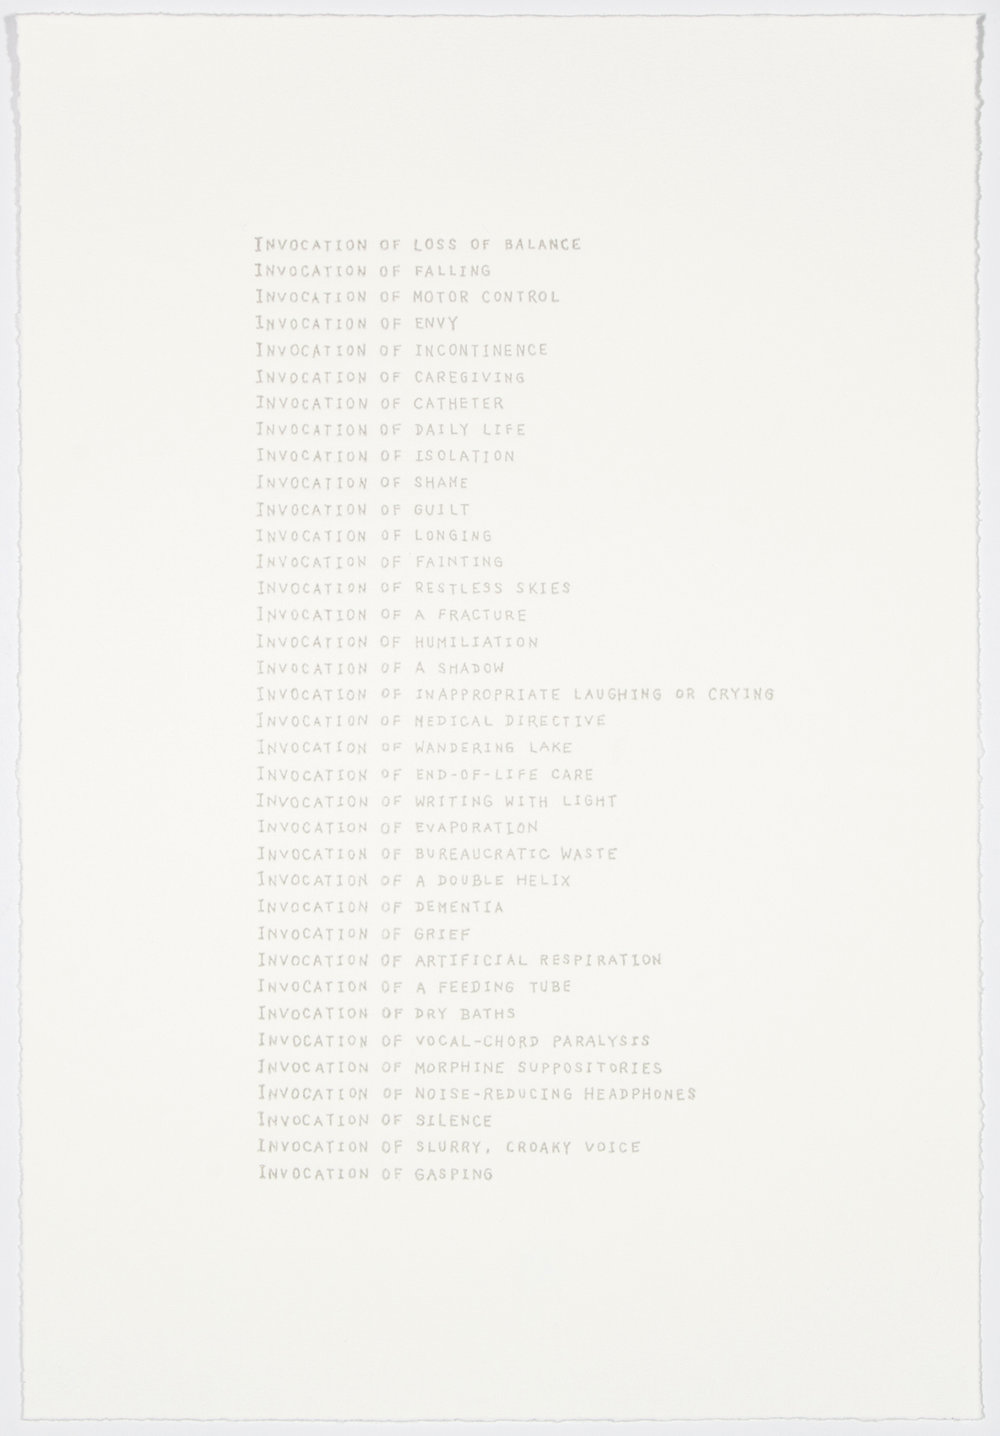 List of Invocations , 2017 Letterpress Image Size: 17.5 x 12 inches Paper Size: 17.5 x 12 inches Edition of 50